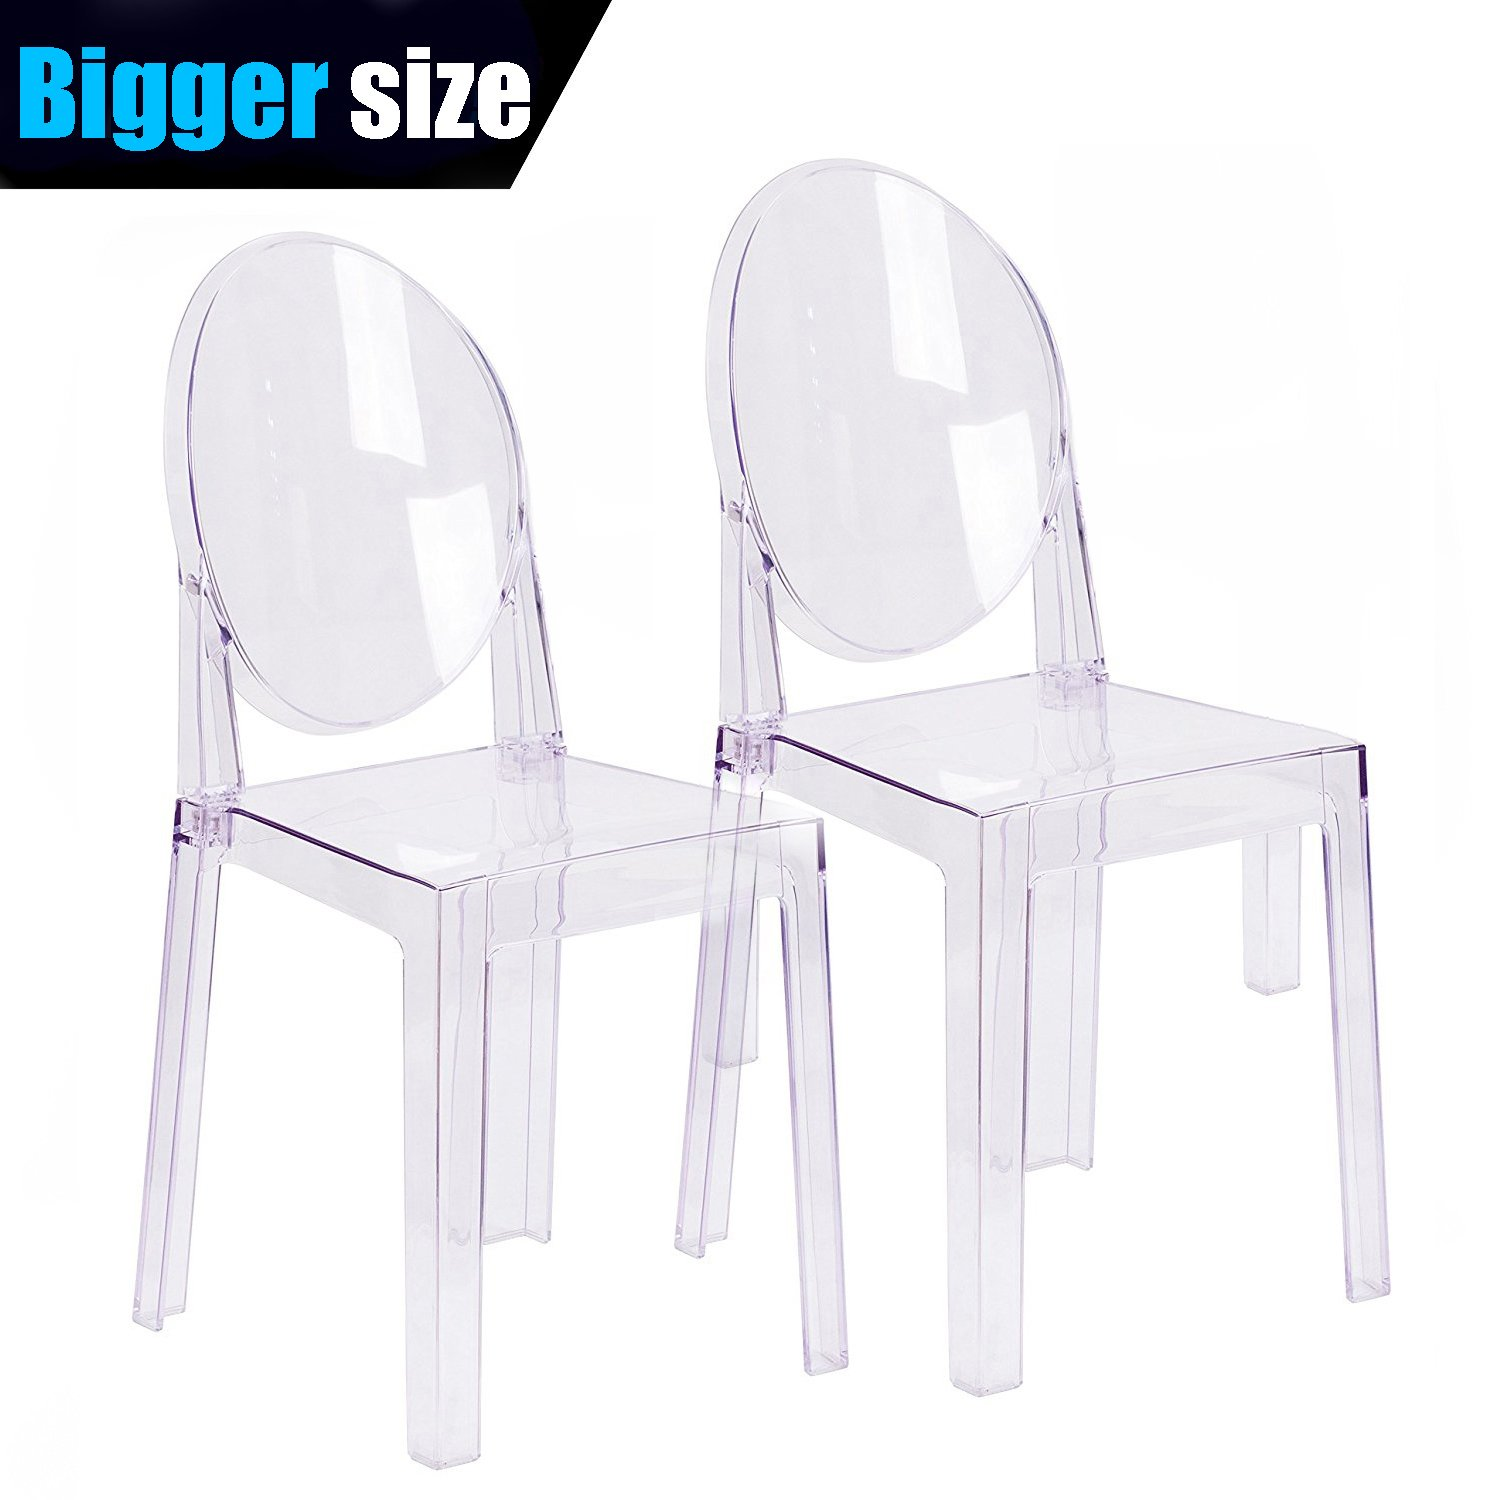 2xhome - Set of Two (2) - Clear - Large Size - Modern Ghost Side Chair Ghost Chair Clear Victoria Chairs Dining Room Chair - Accent Seat - Lounge No Arms Armless Arm Less Chairs by 2xhome